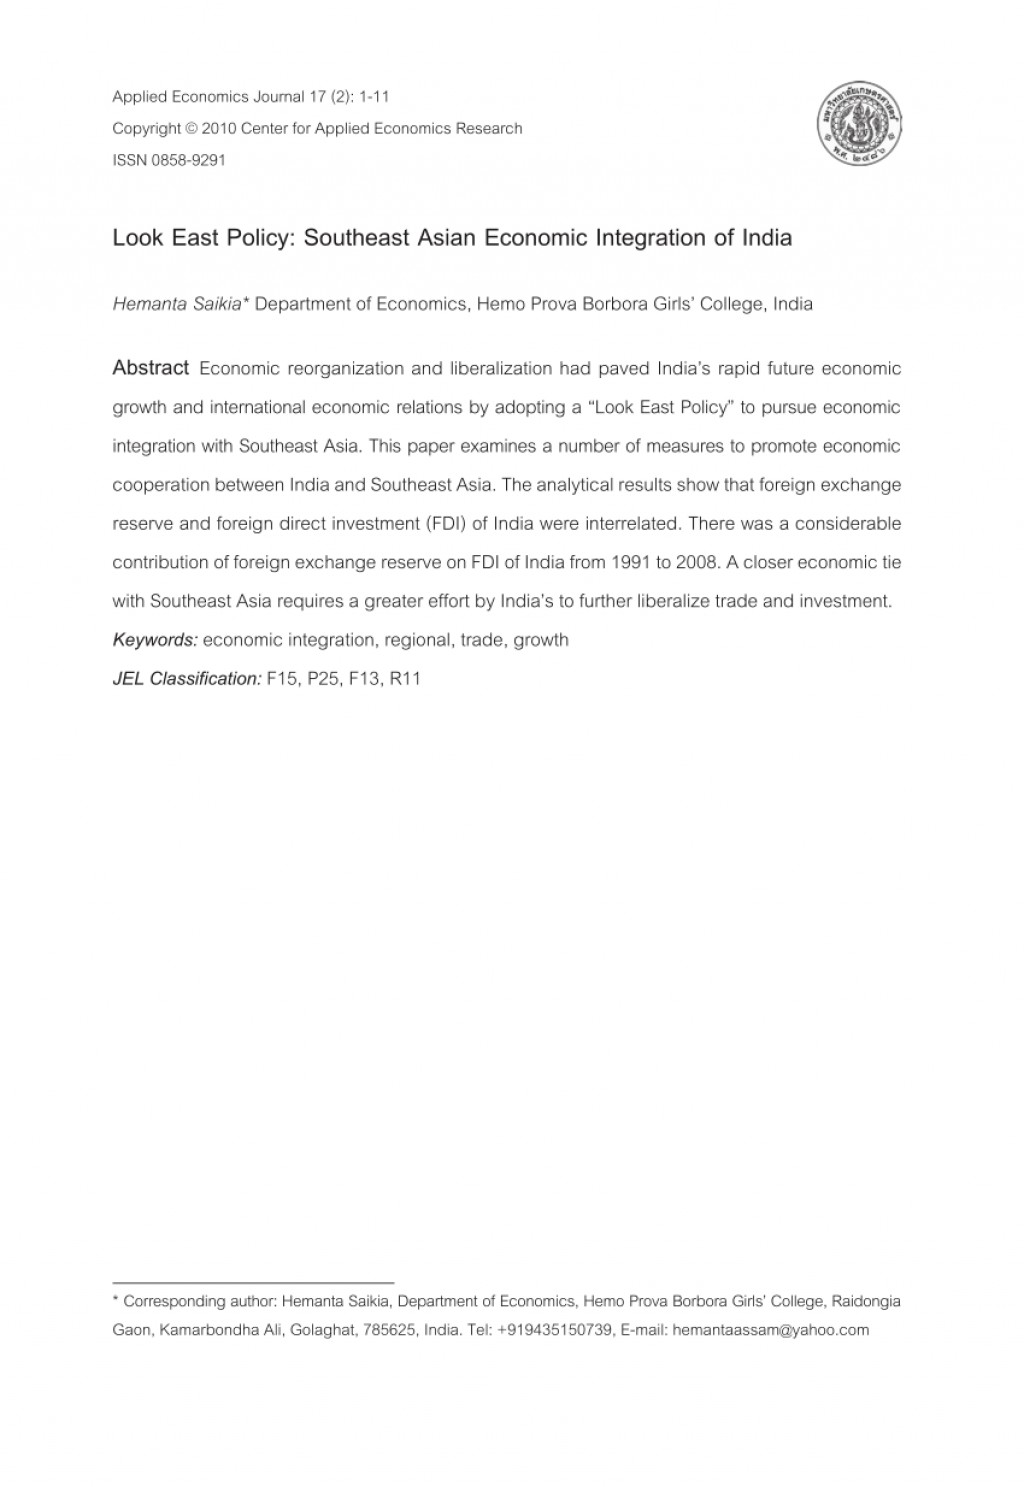 005 Economic Research Papers India Paper Impressive Indian Scholarly Articles On In Large